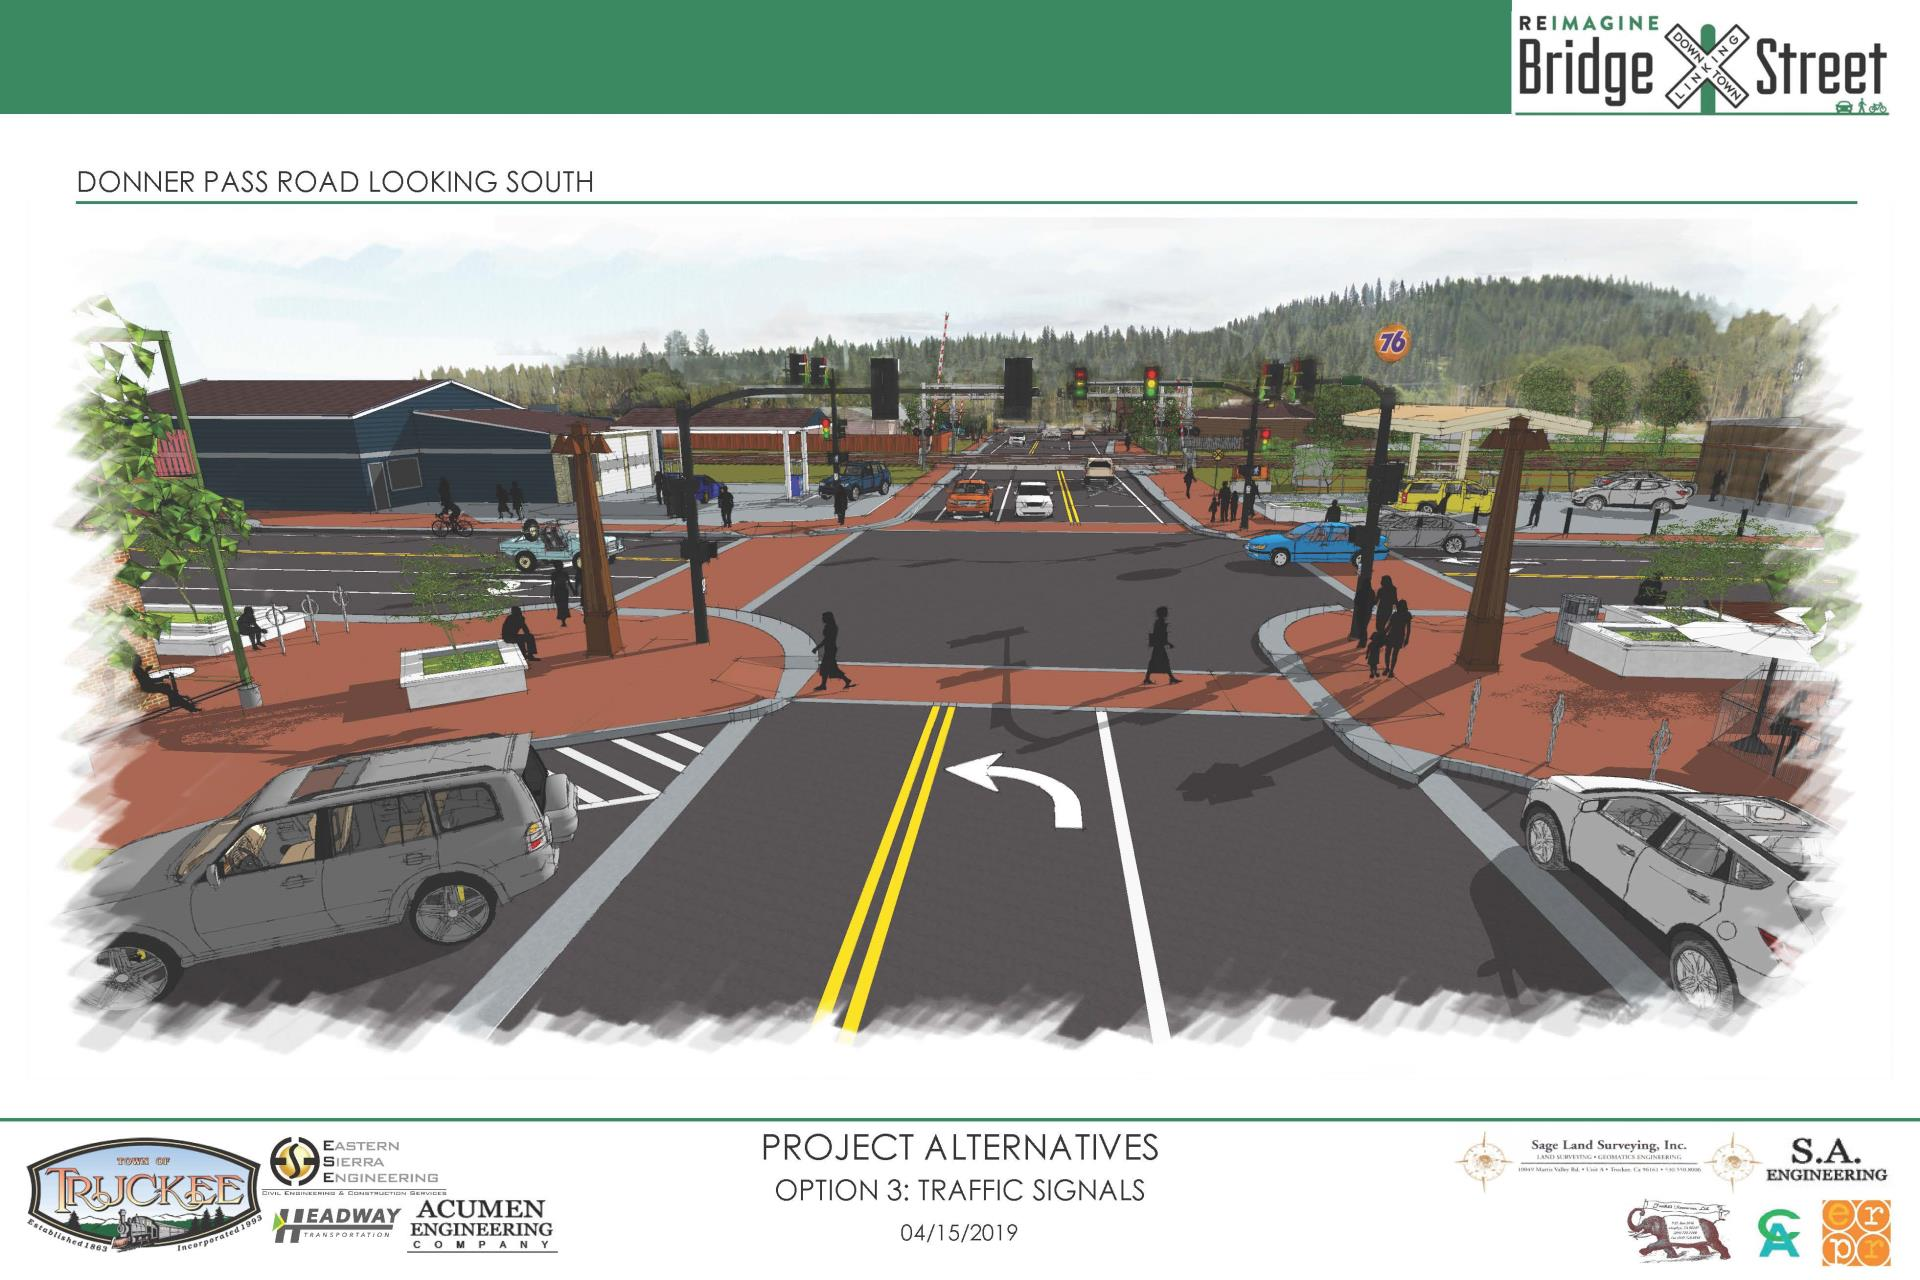 Reimagine Bridge Street Option 3